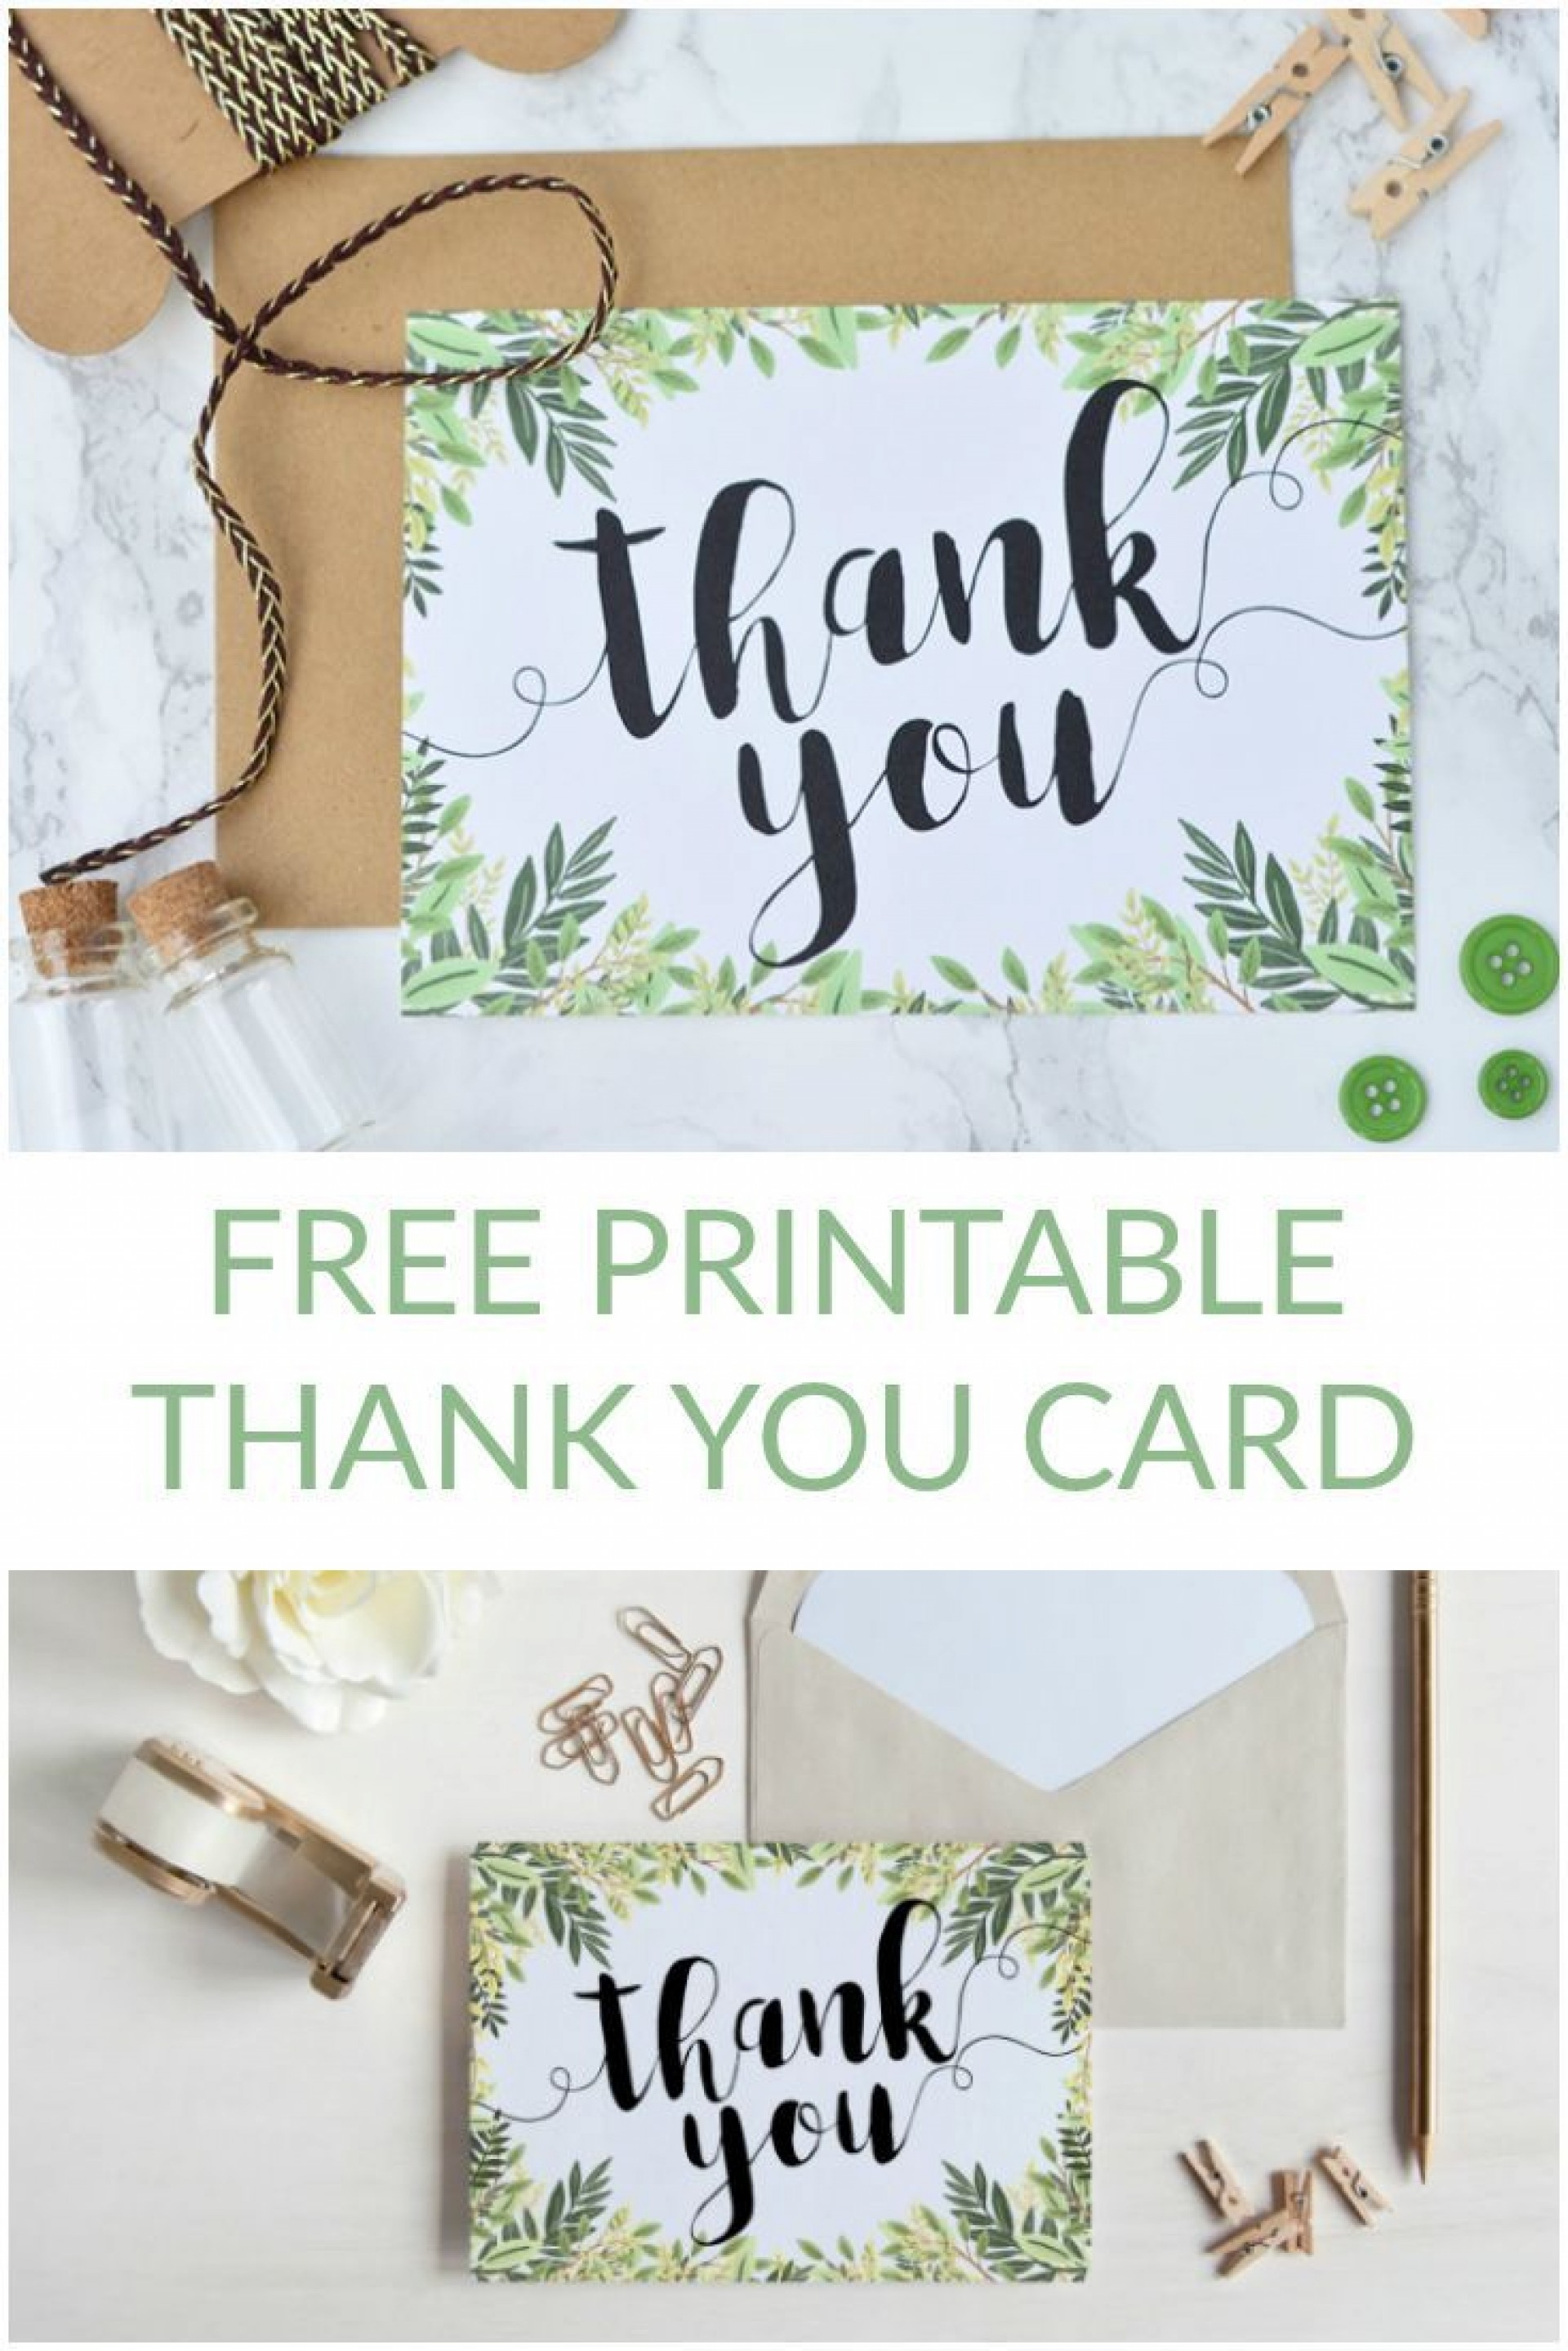 004 Unbelievable Free Thank You Card Template Highest Clarity  Google Doc For Funeral Microsoft Word1920